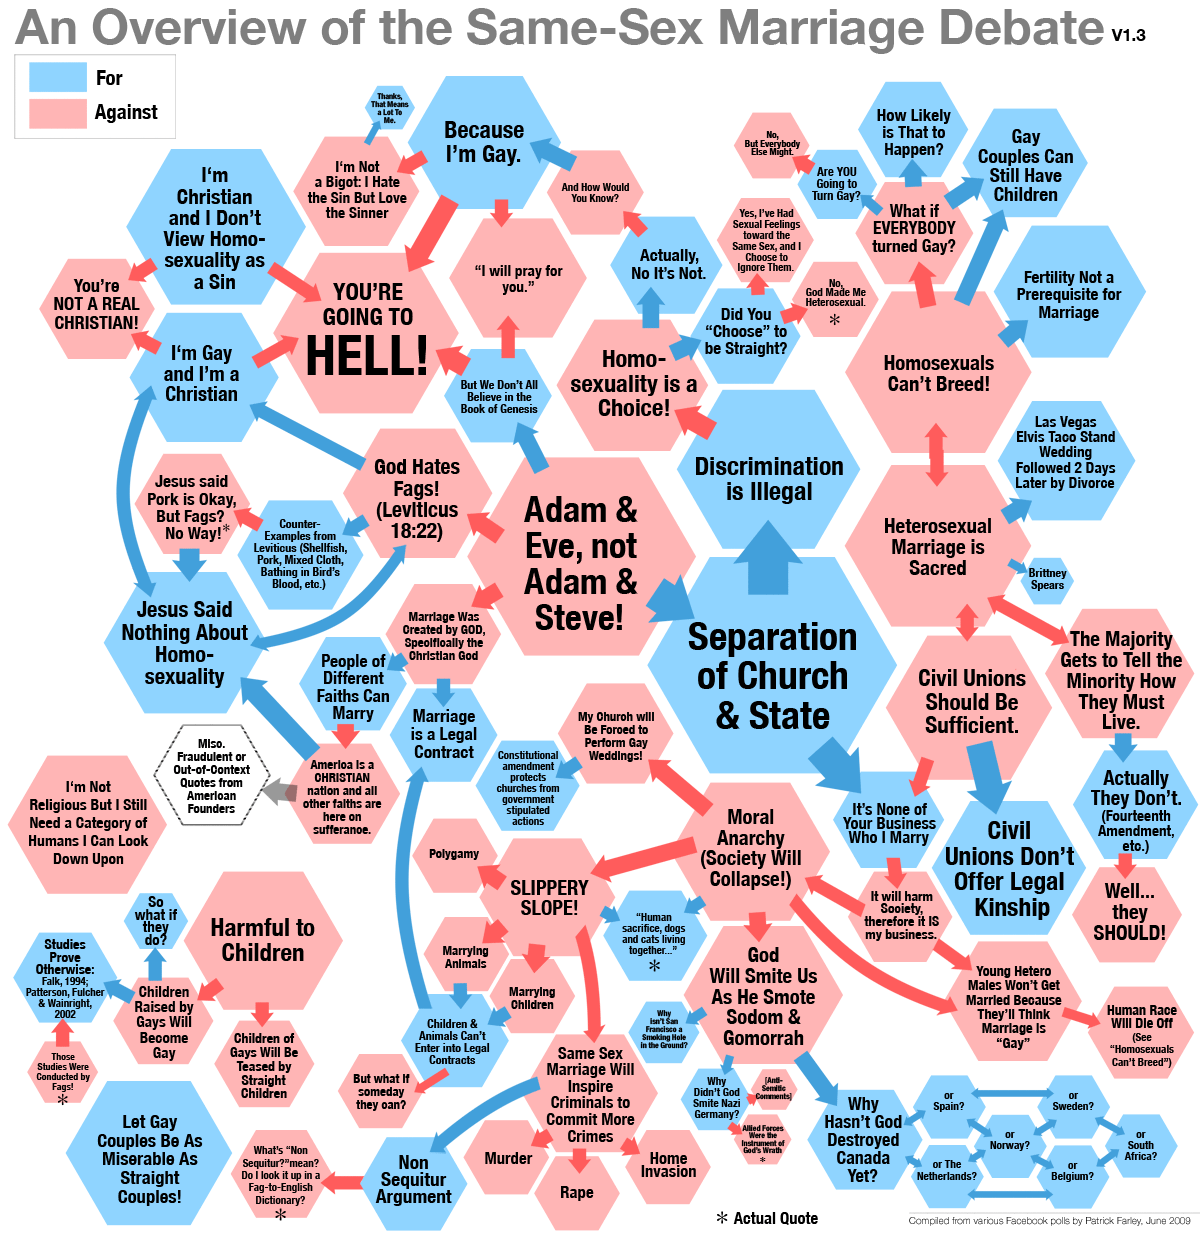 fabulous gay equality debate flow chart cynthia yockey a fabulous an overview of the same sex marriage debate